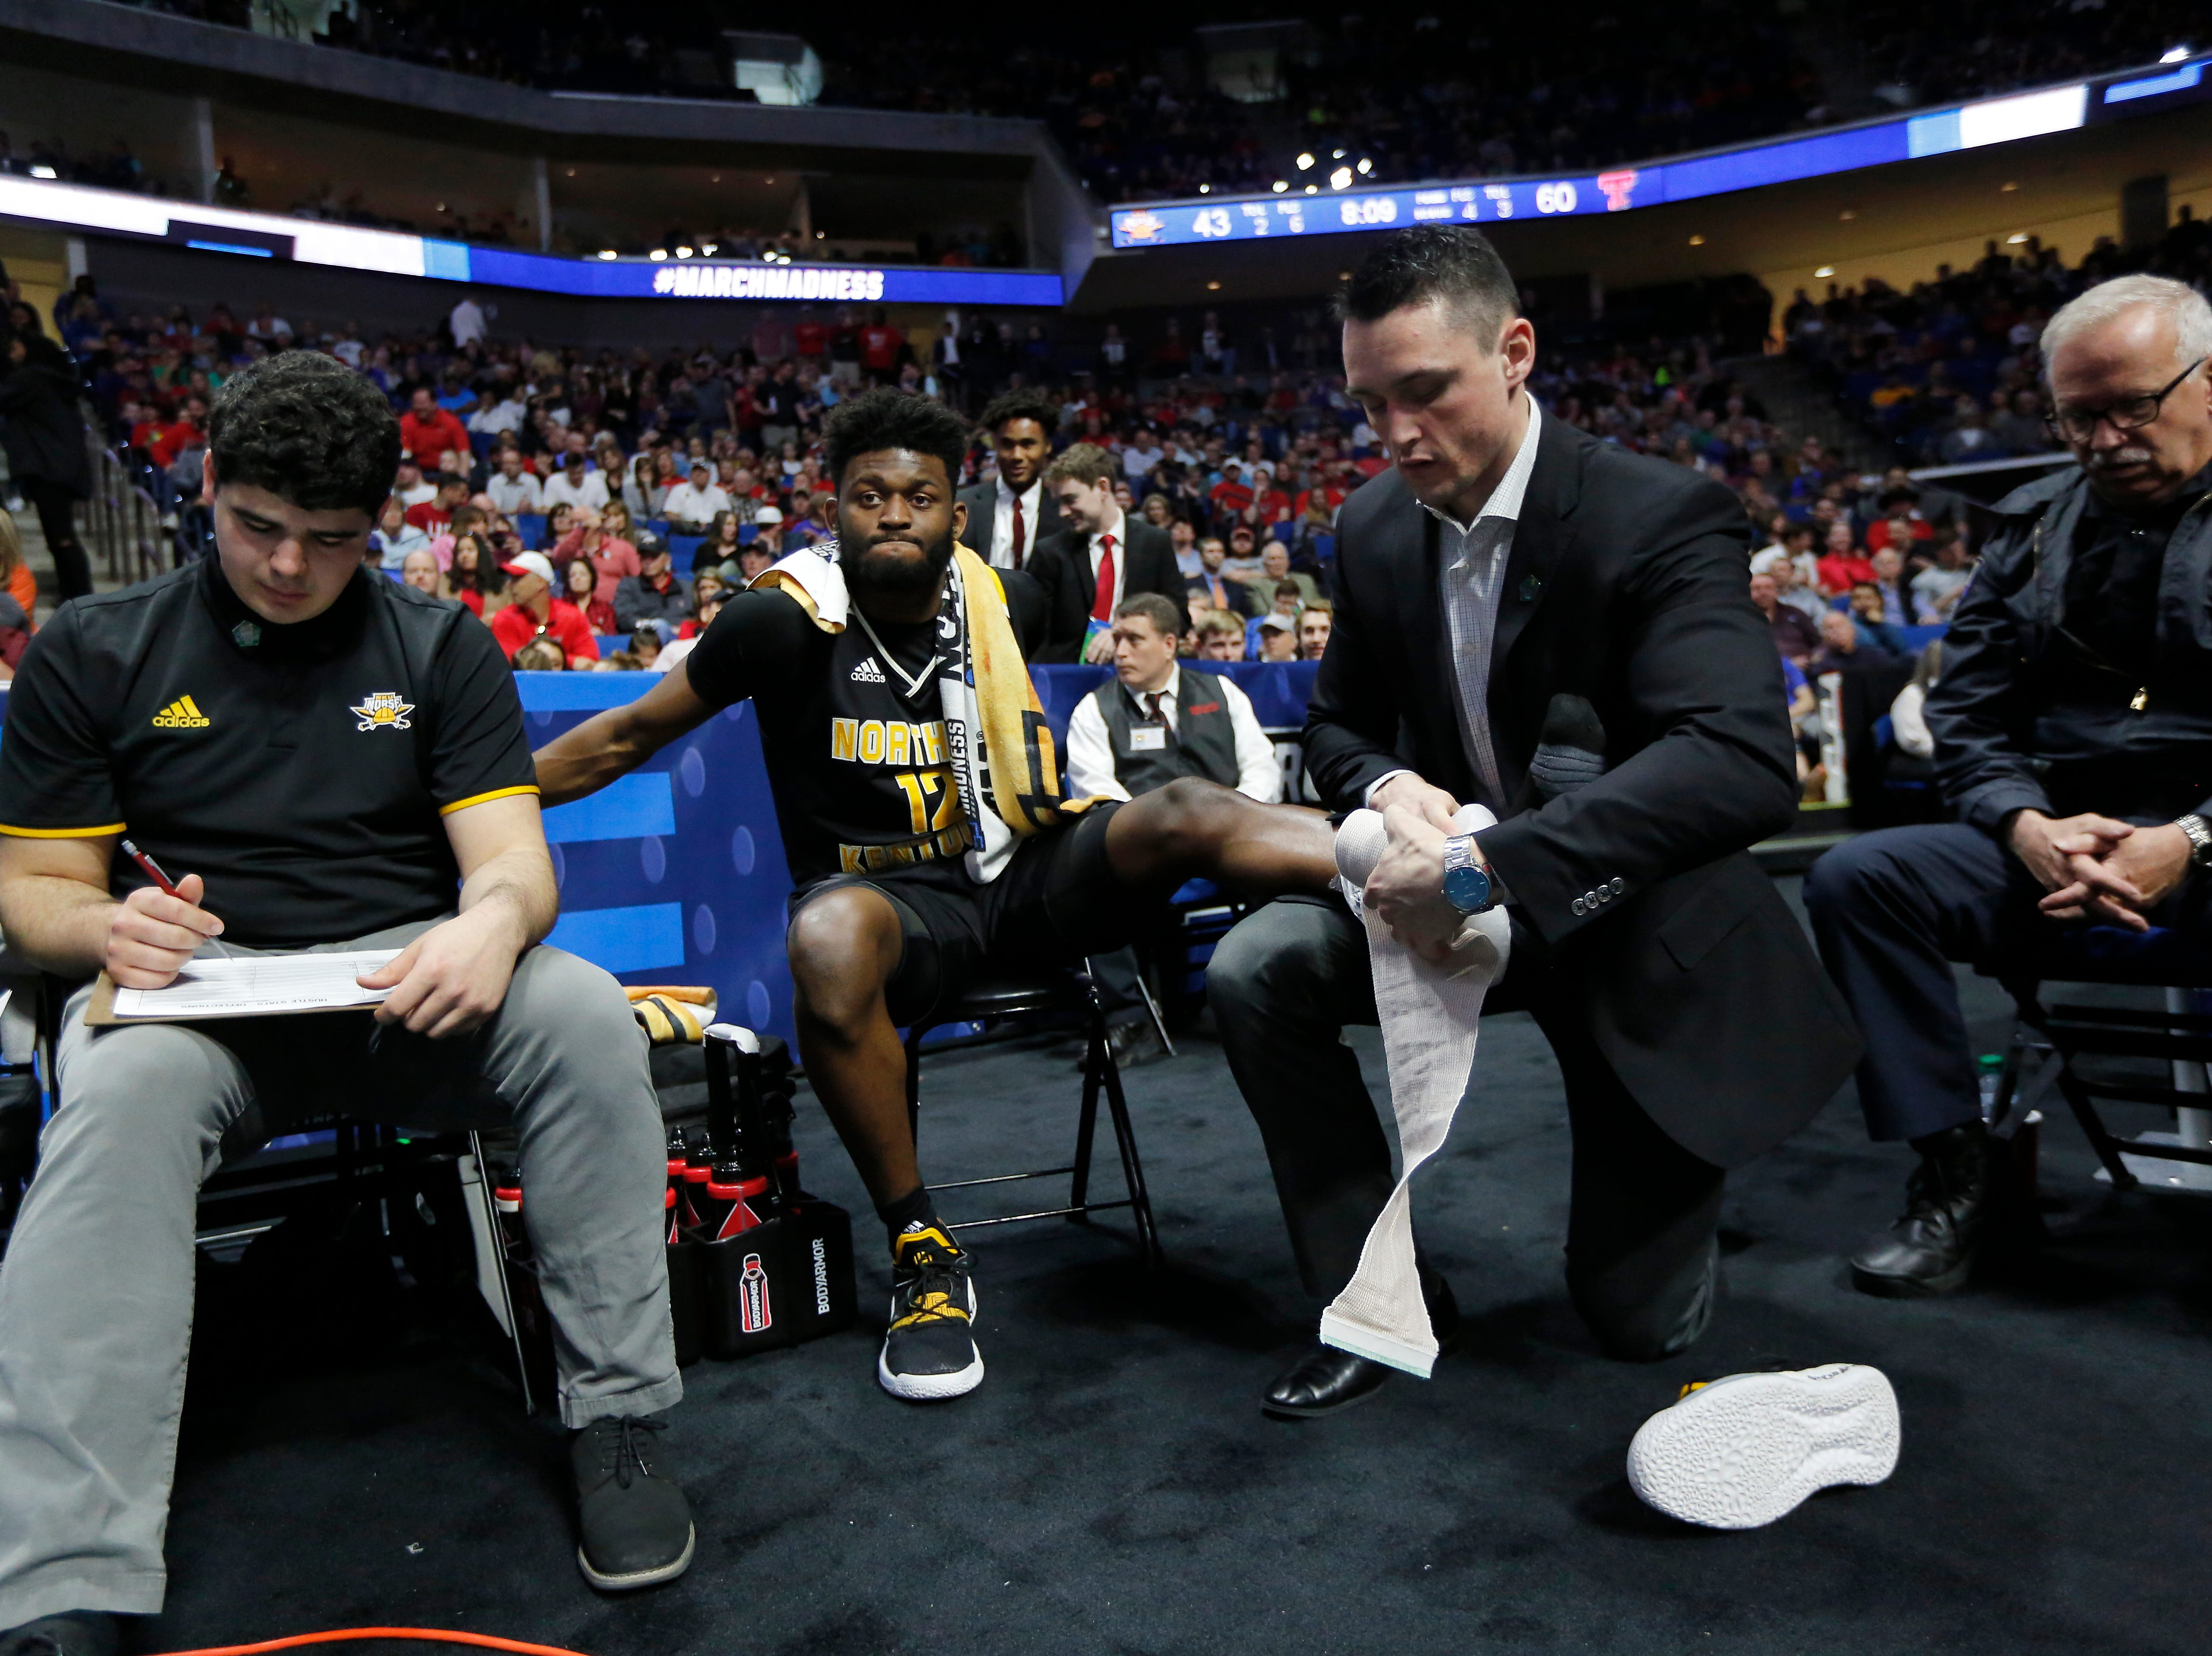 Northern Kentucky Norse guard Trevon Faulkner (12) has his ankle wrapped in ice in the second half of the NCAA Tournament First Round game between the 14-seeded Northern Kentucky Norse and the 3-seeded Texas Tech Red Raiders the BOK Center in downtown Tulsa on Friday, March 22, 2019. NKU was knocked from the tournament with a 72-57 loss to the Red Raiders.